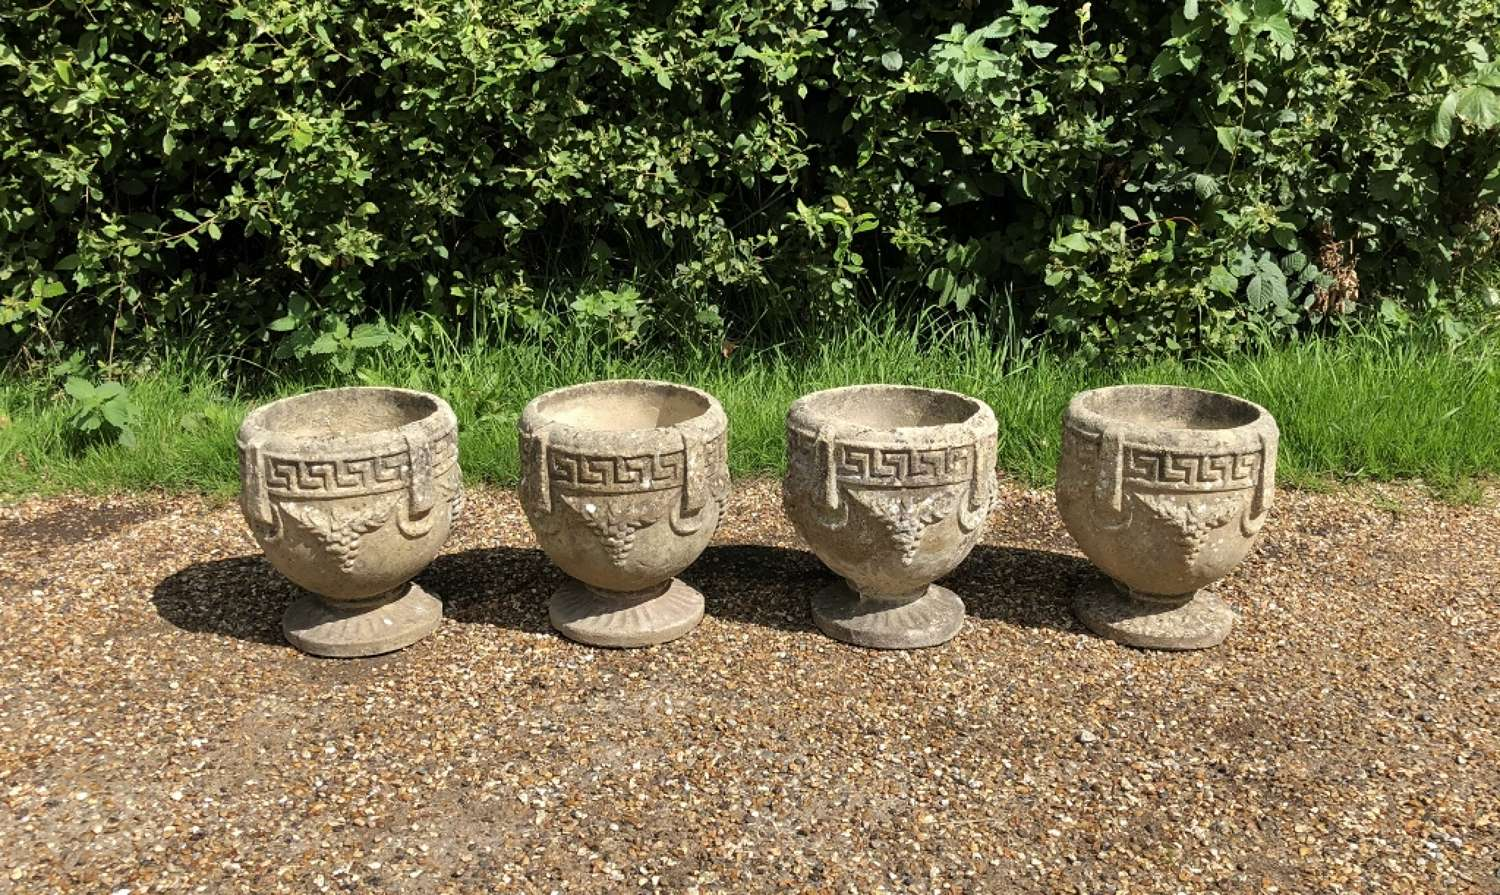 Set of 4 Small Composite Bowl Urns